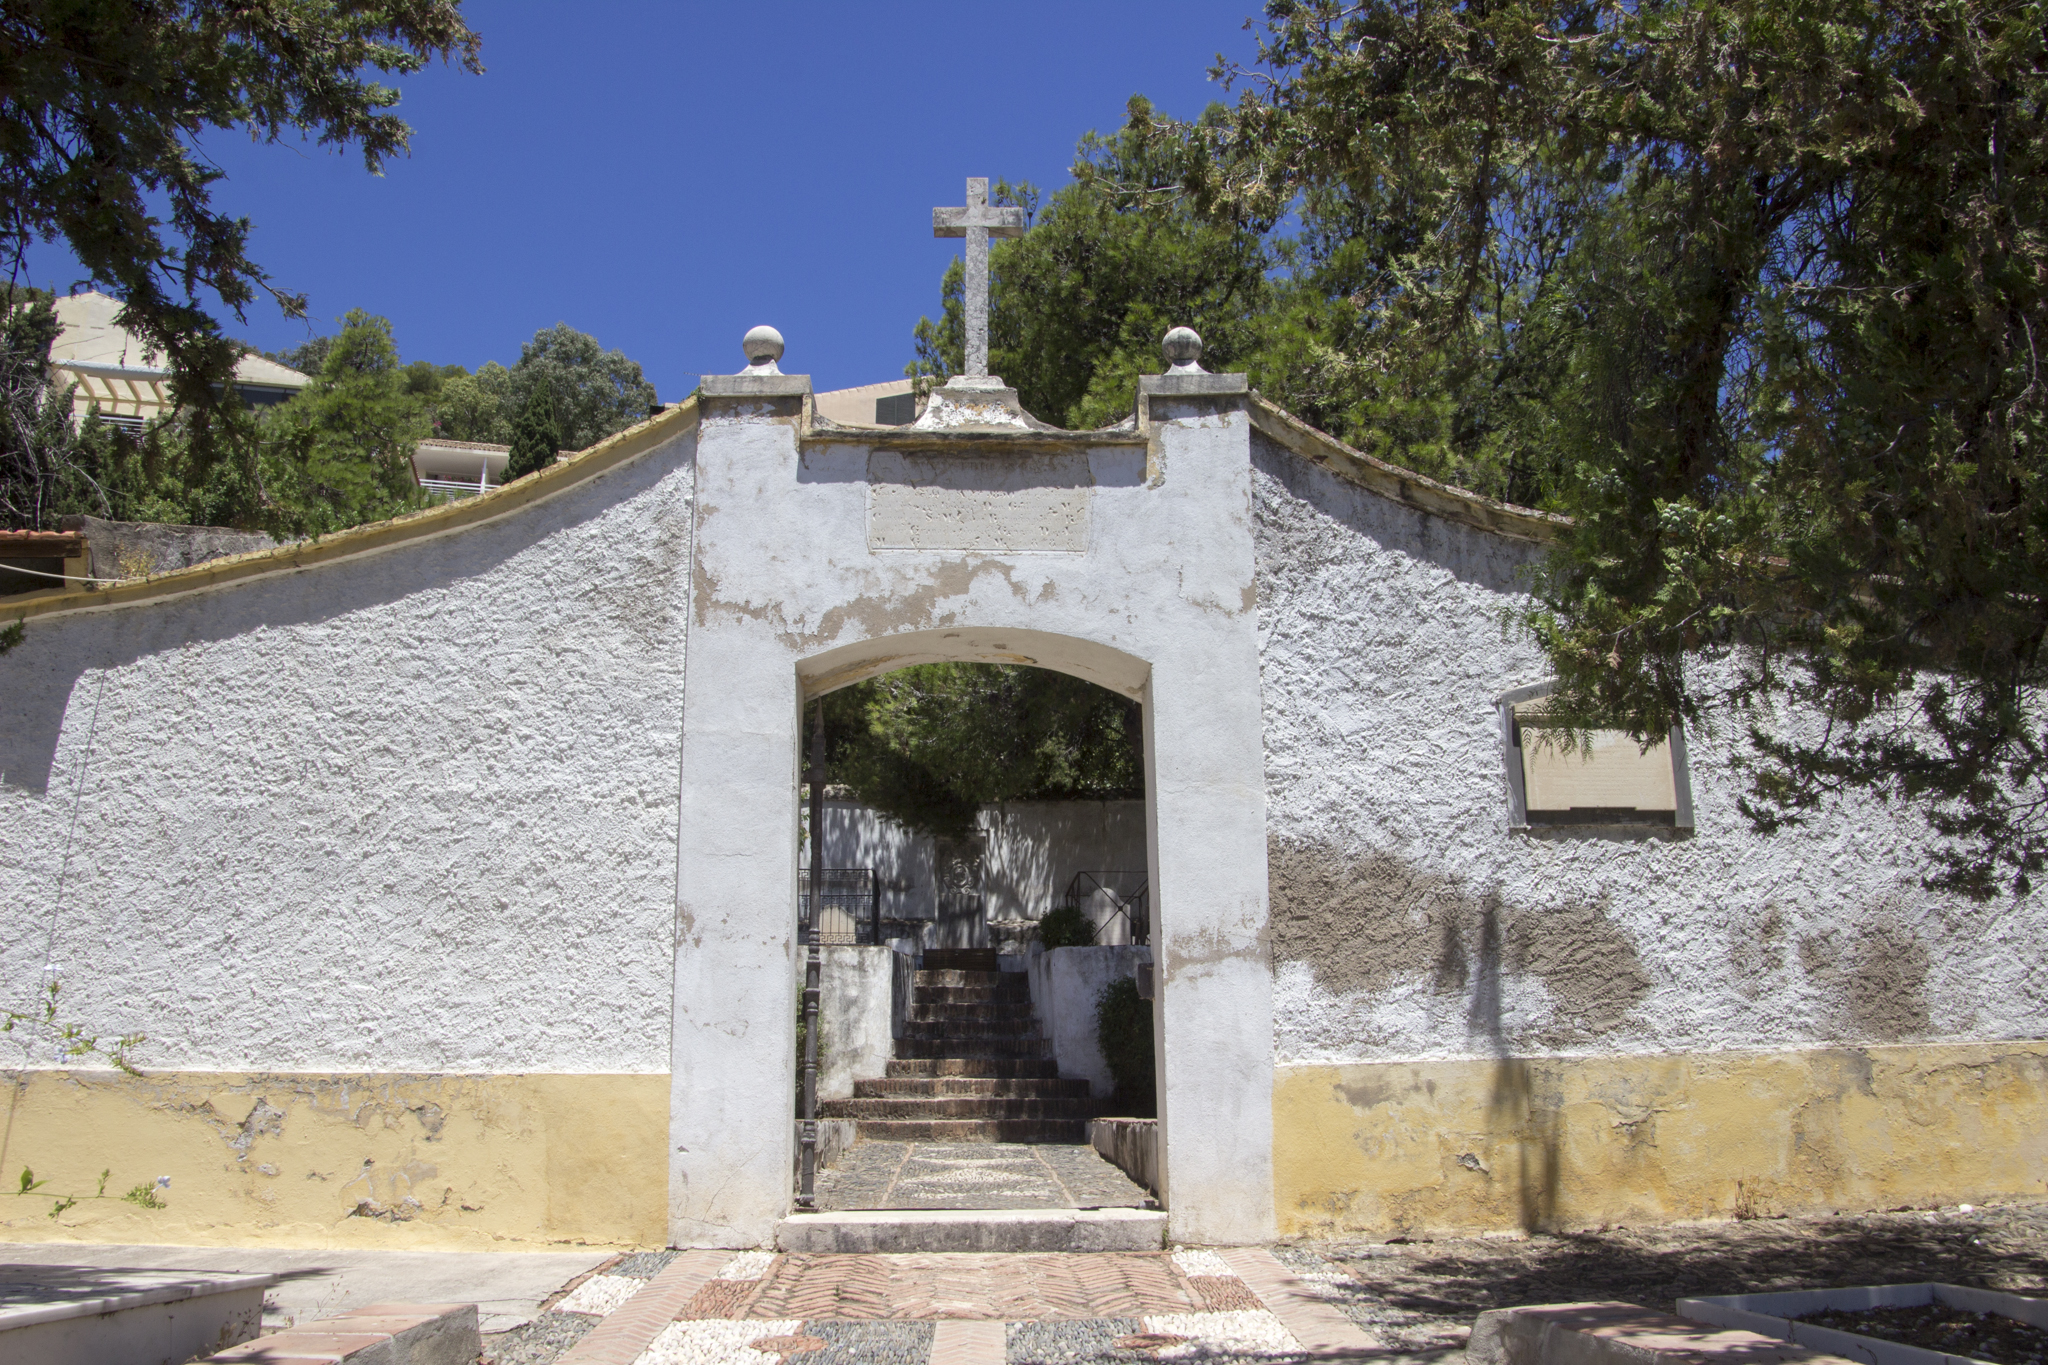 The English Cemetery in Malaga